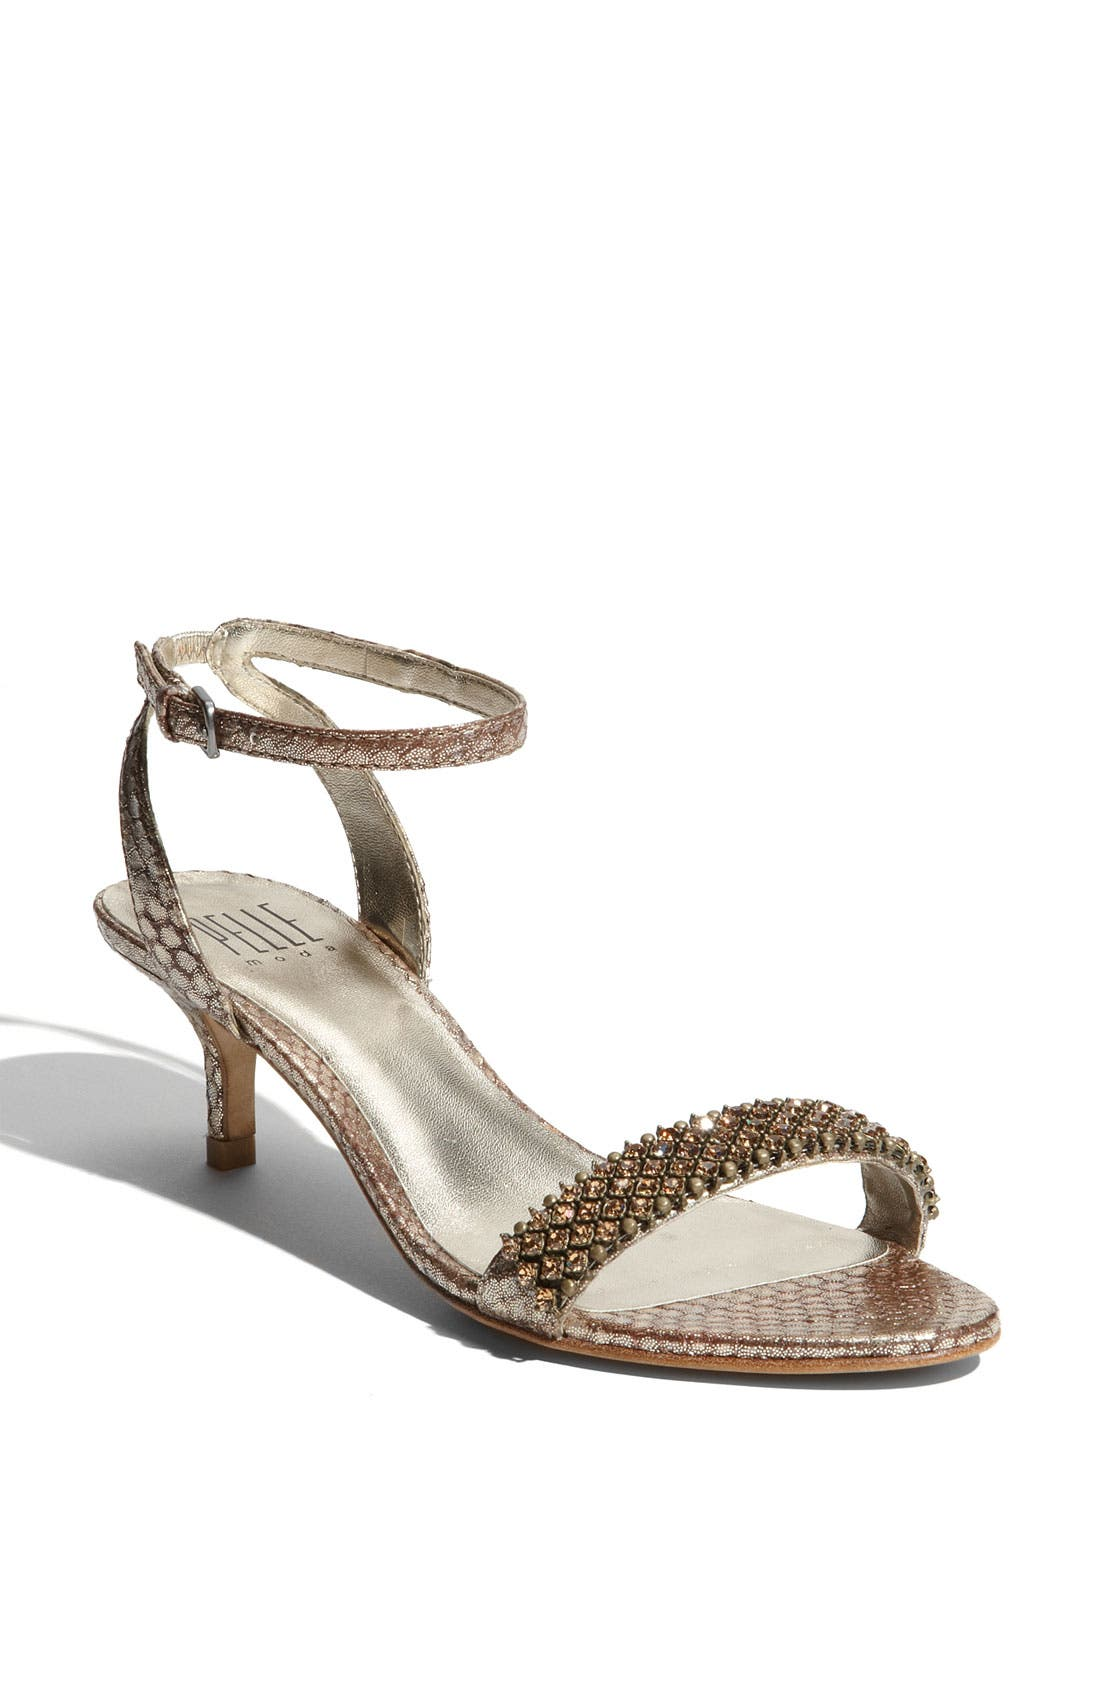 Alternate Image 1 Selected - Pelle Moda 'Fabia' Sandal (Women)